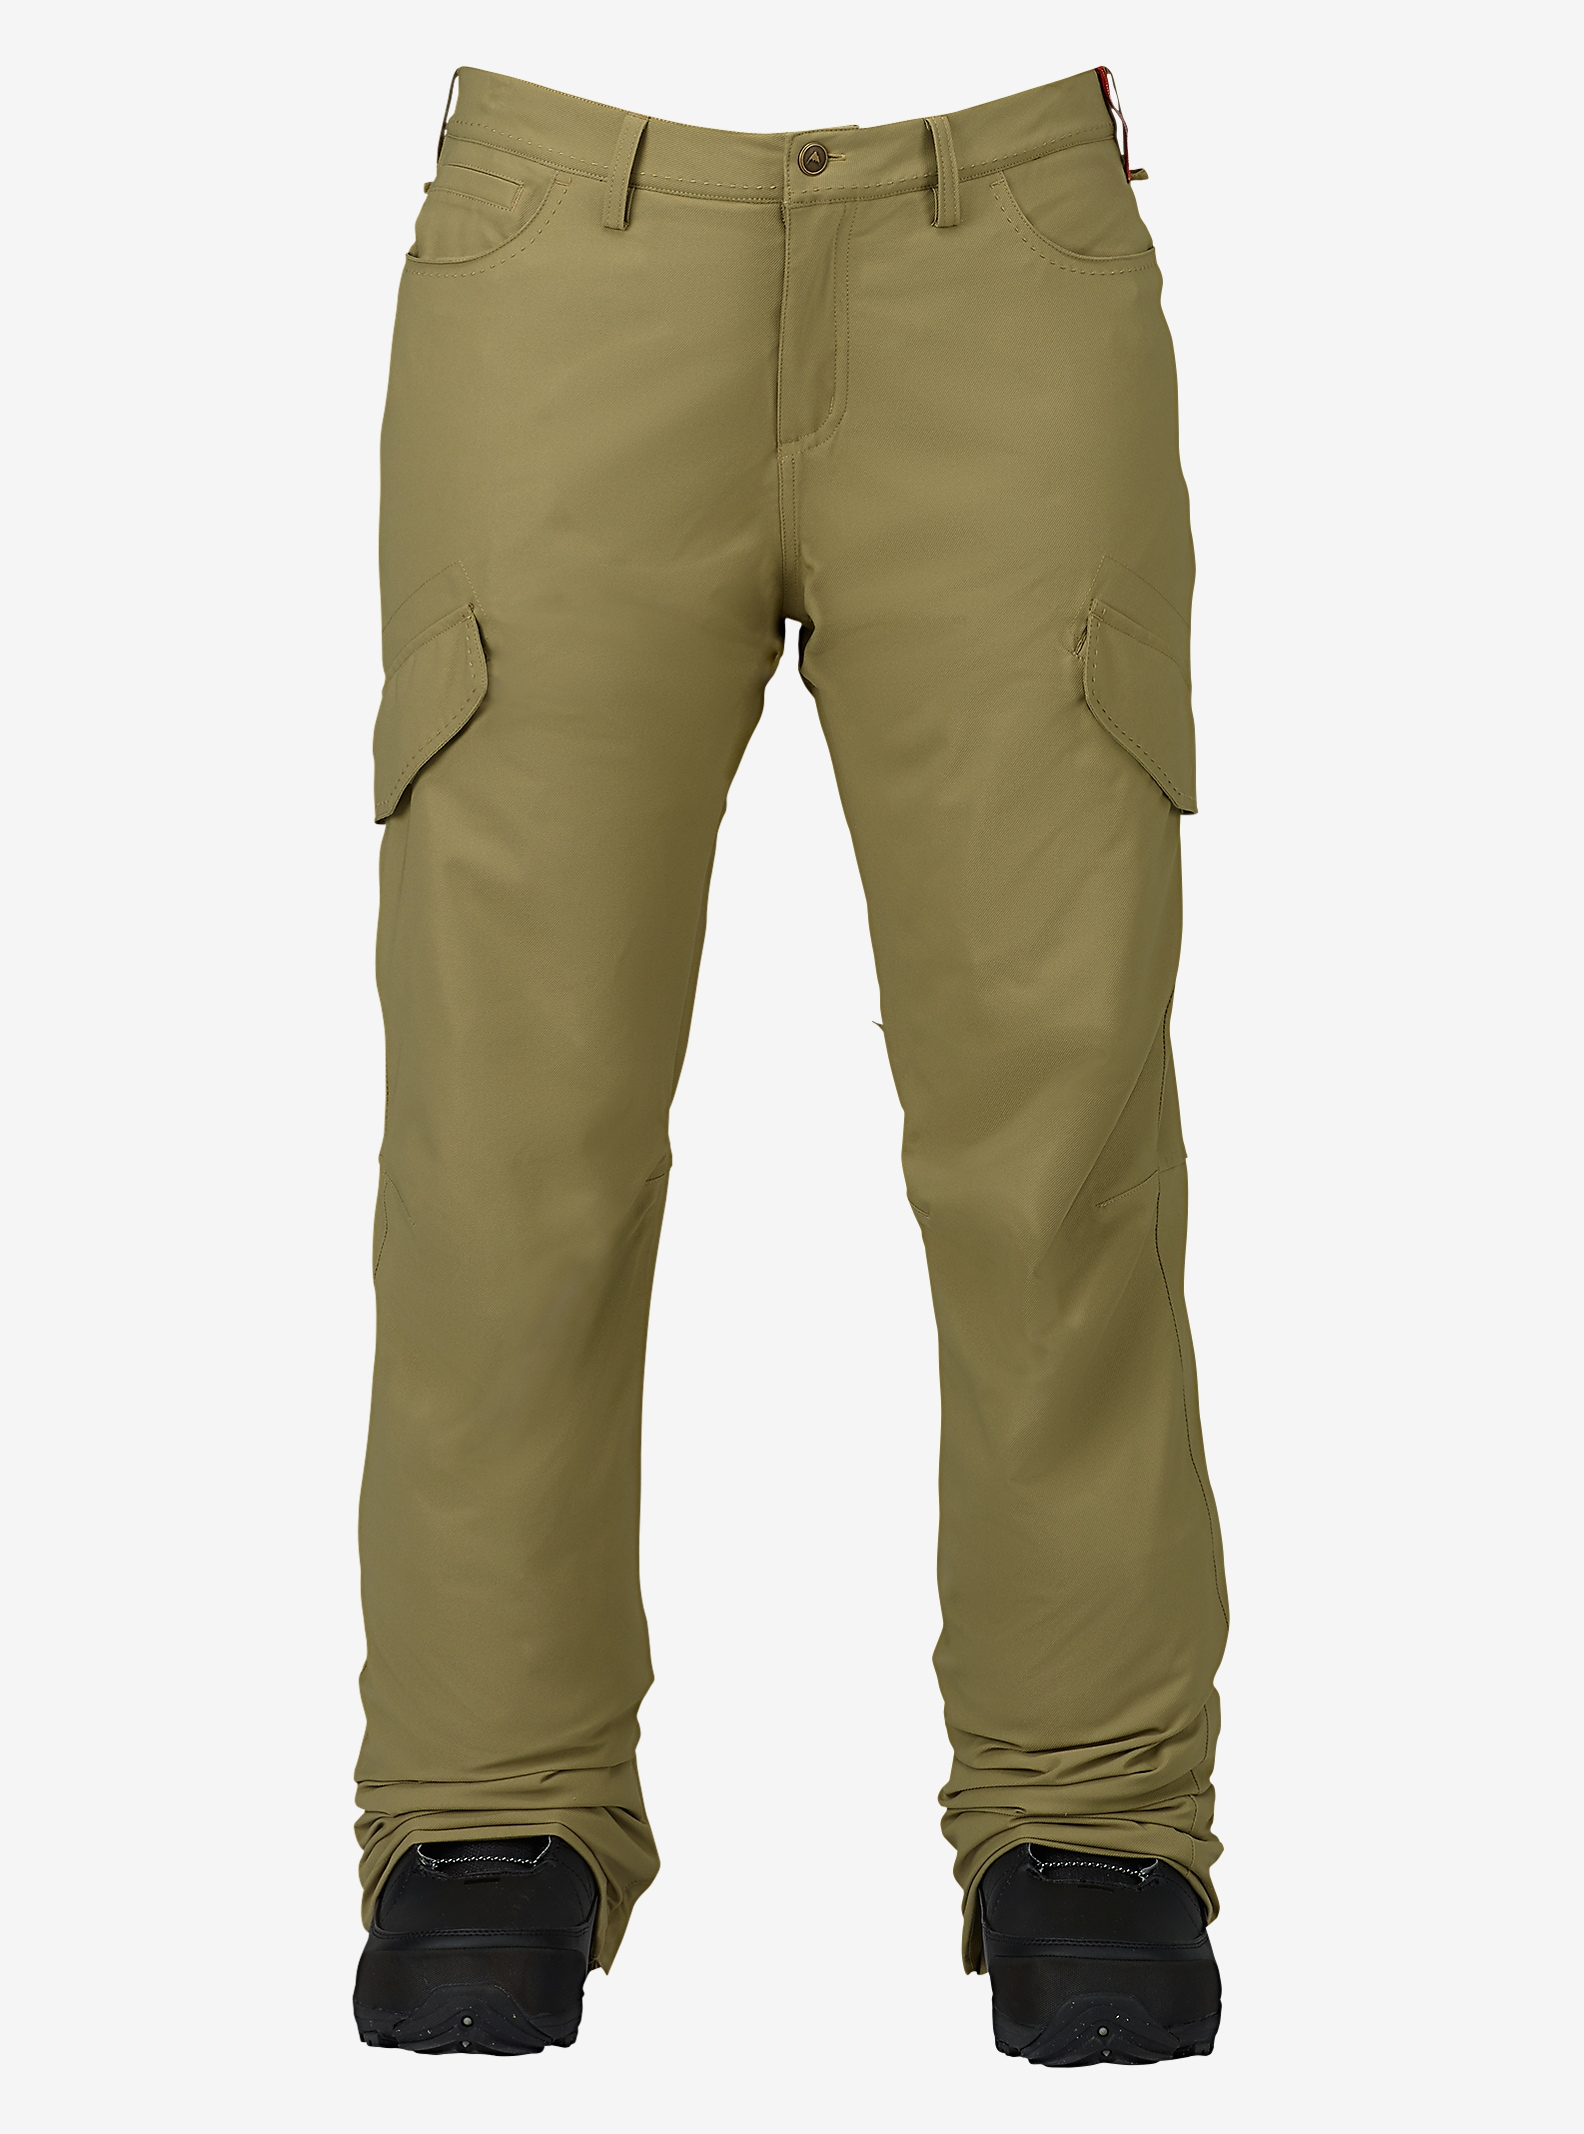 Burton Fly Pant shown in Rucksack